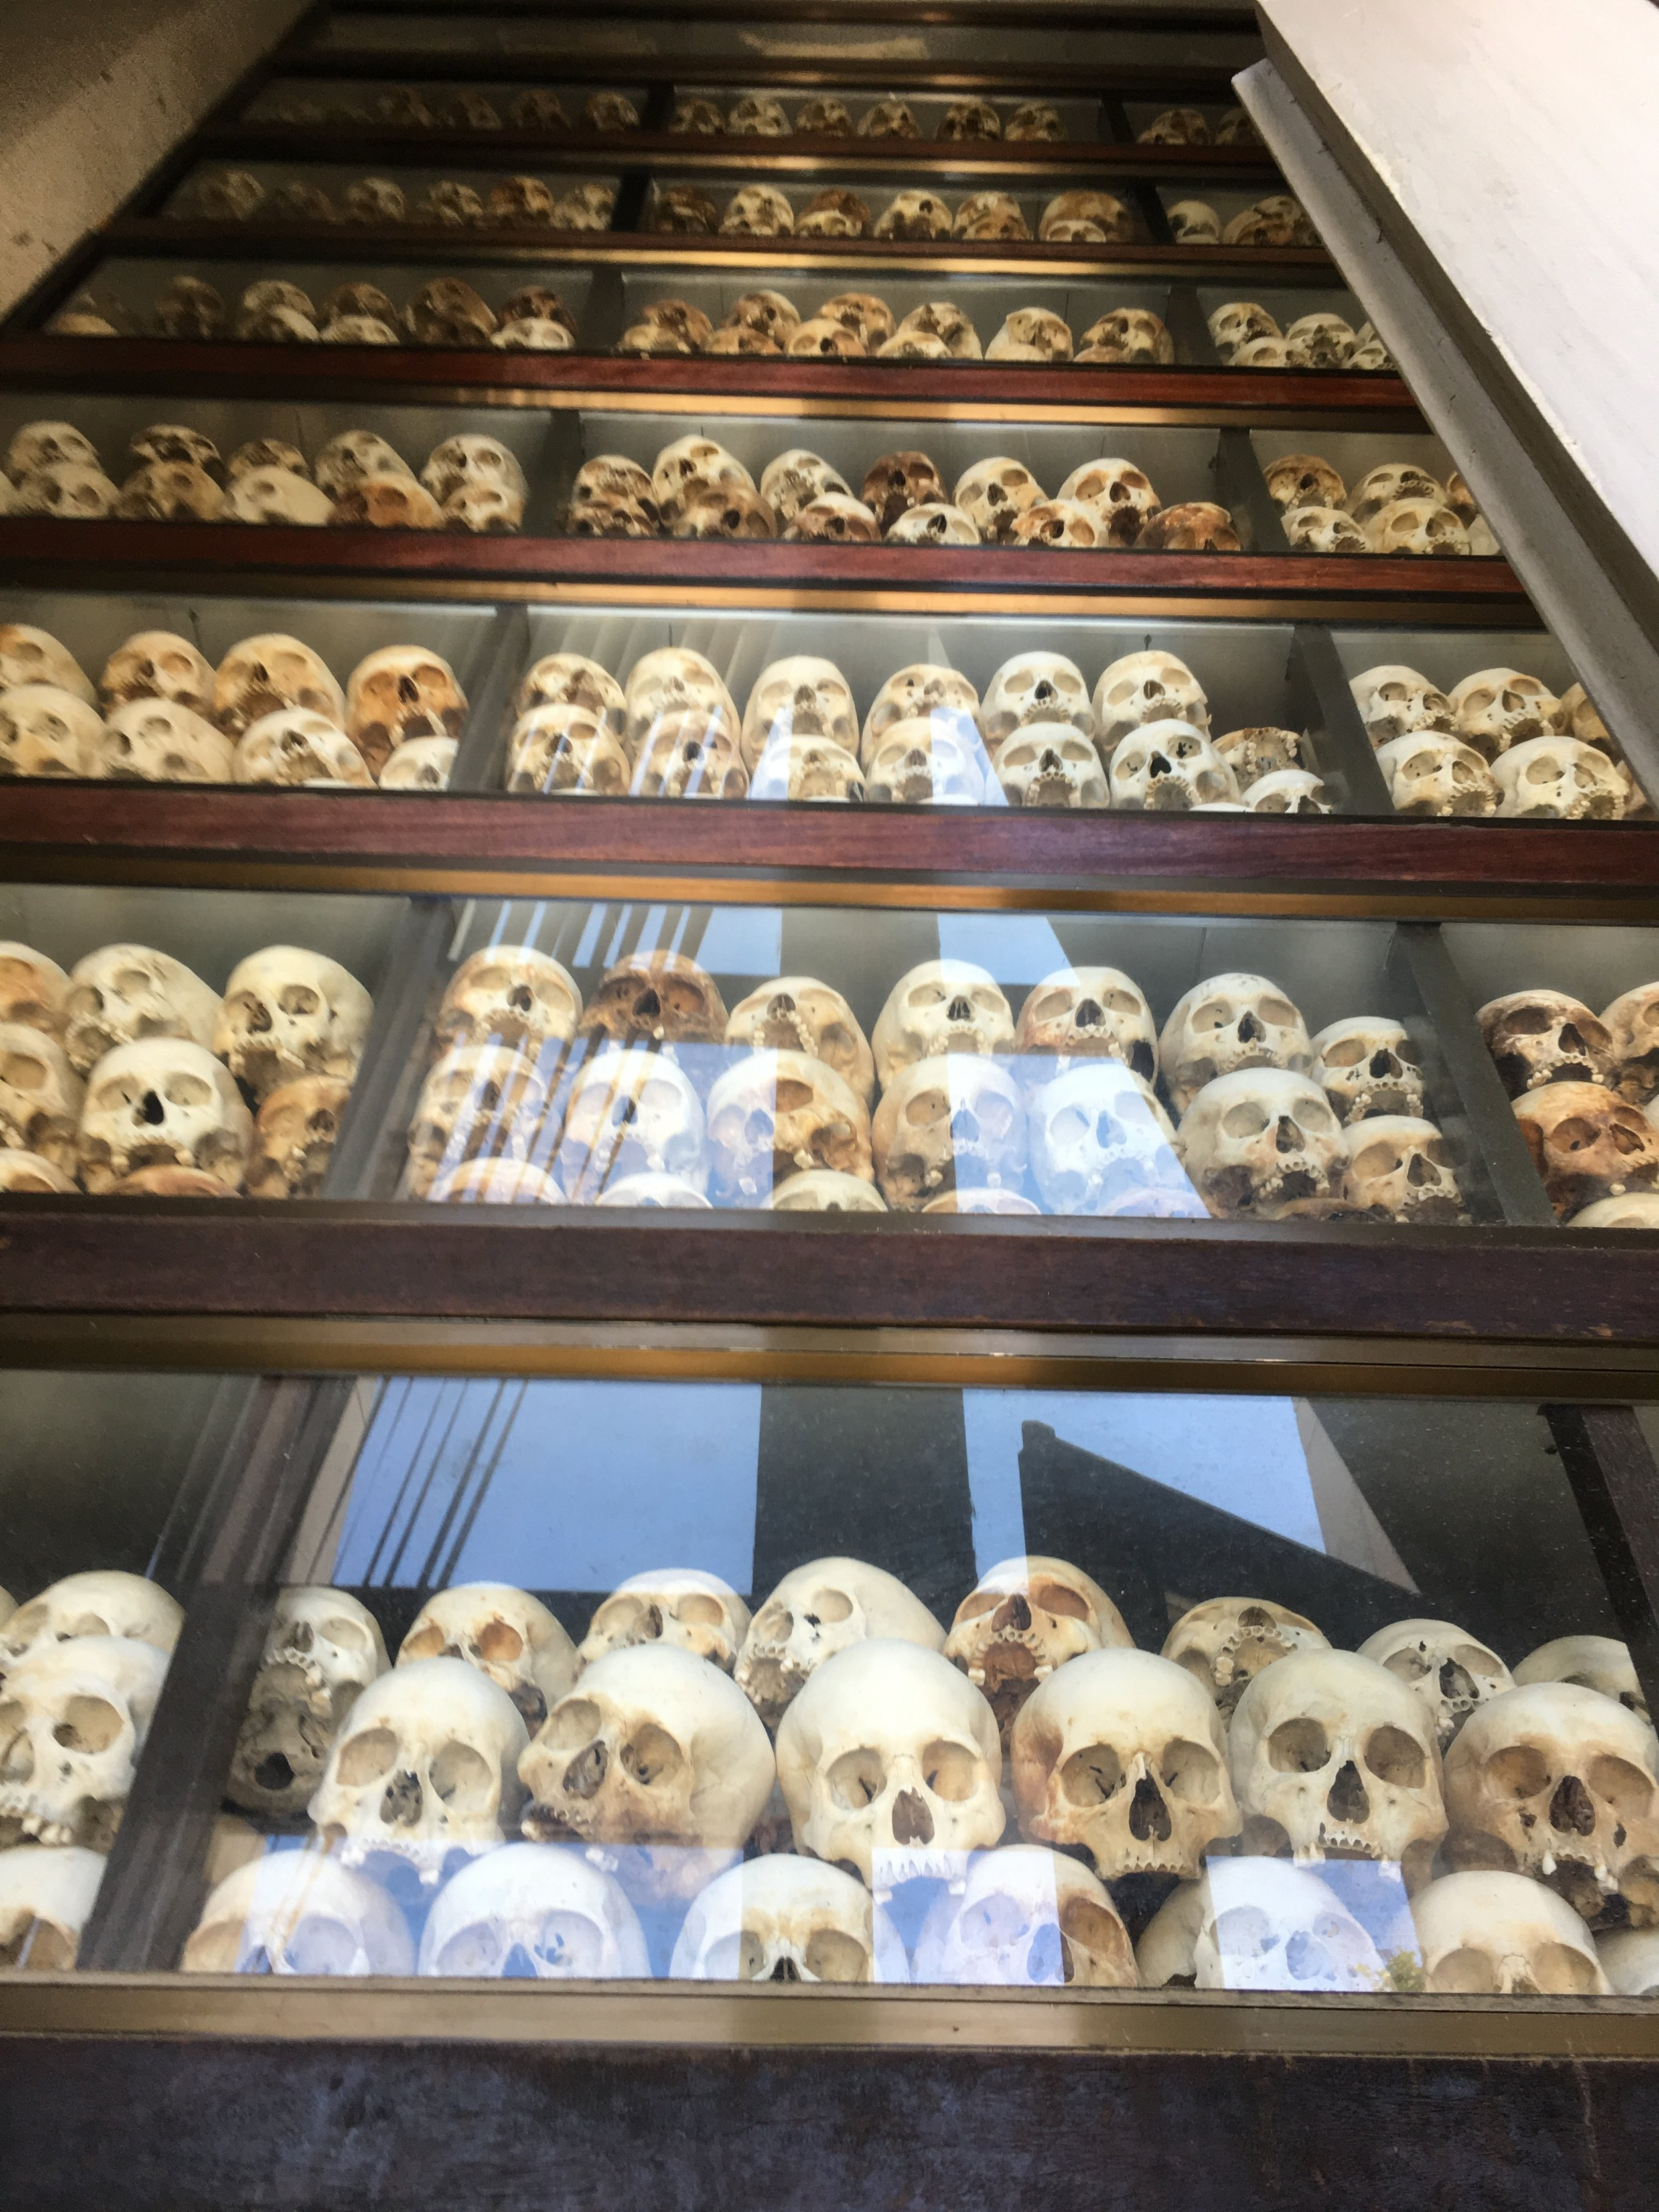 All skulls collected from the killing field mass grave, arranged from younger age to older at the top. It was a terrible terrible sight.